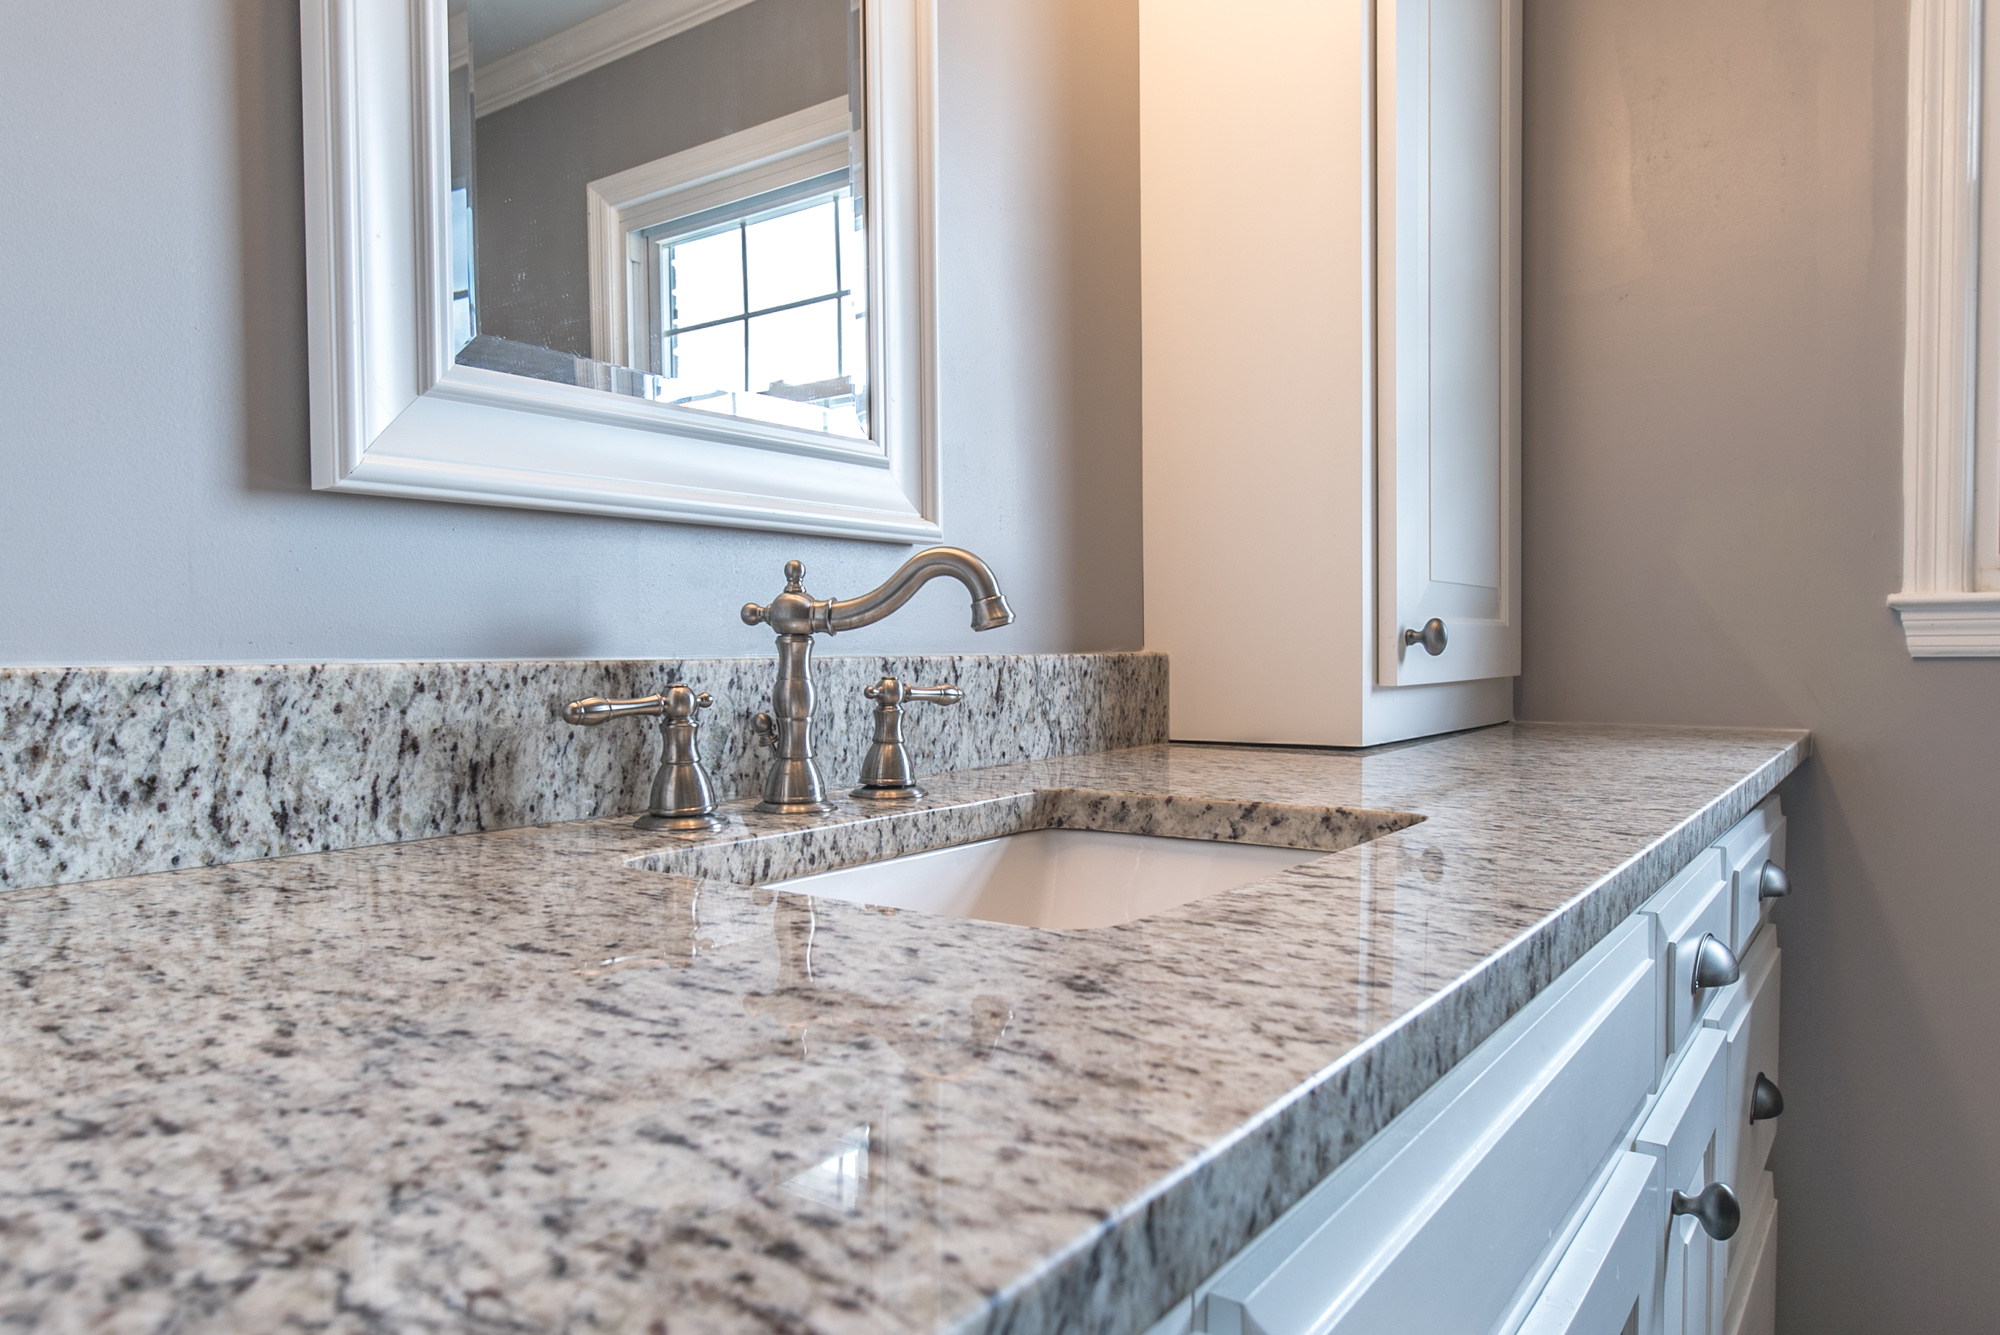 Bathroom countertop renovation project in Raleigh, NC